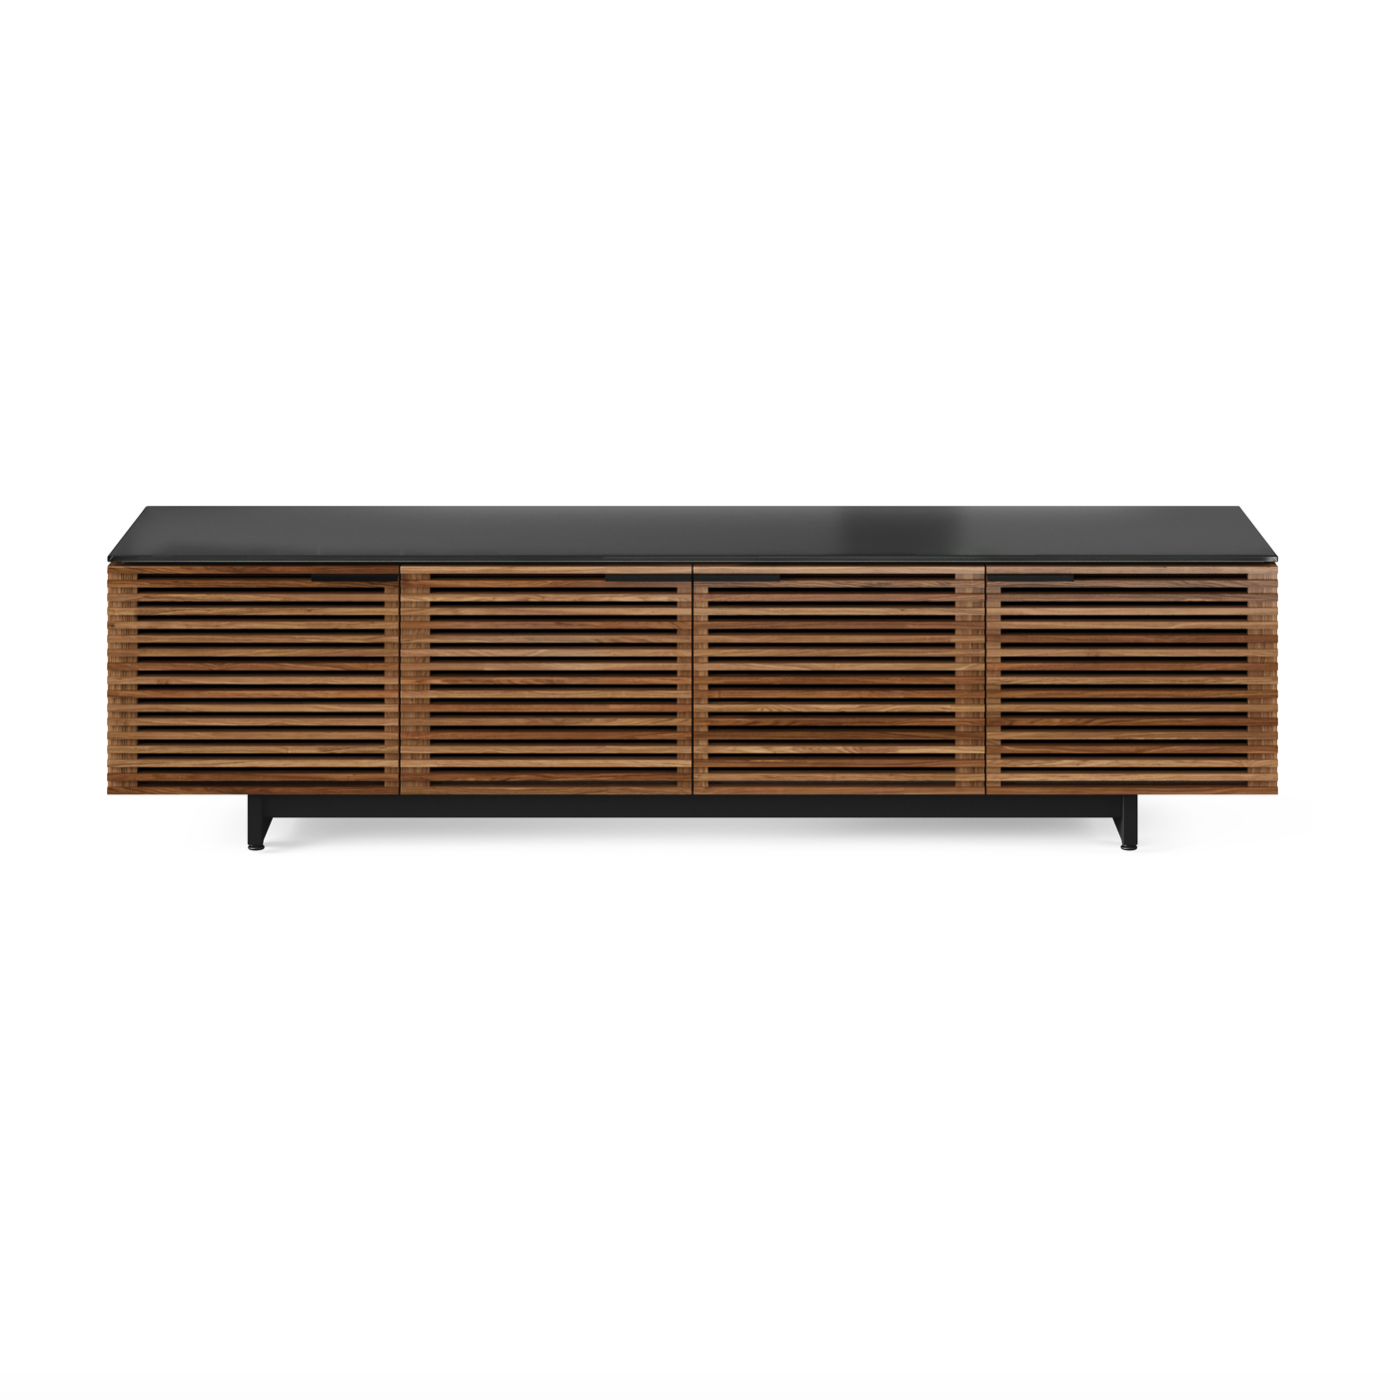 Corridor 8173 Entertainment Cabinet | Natural Walnut